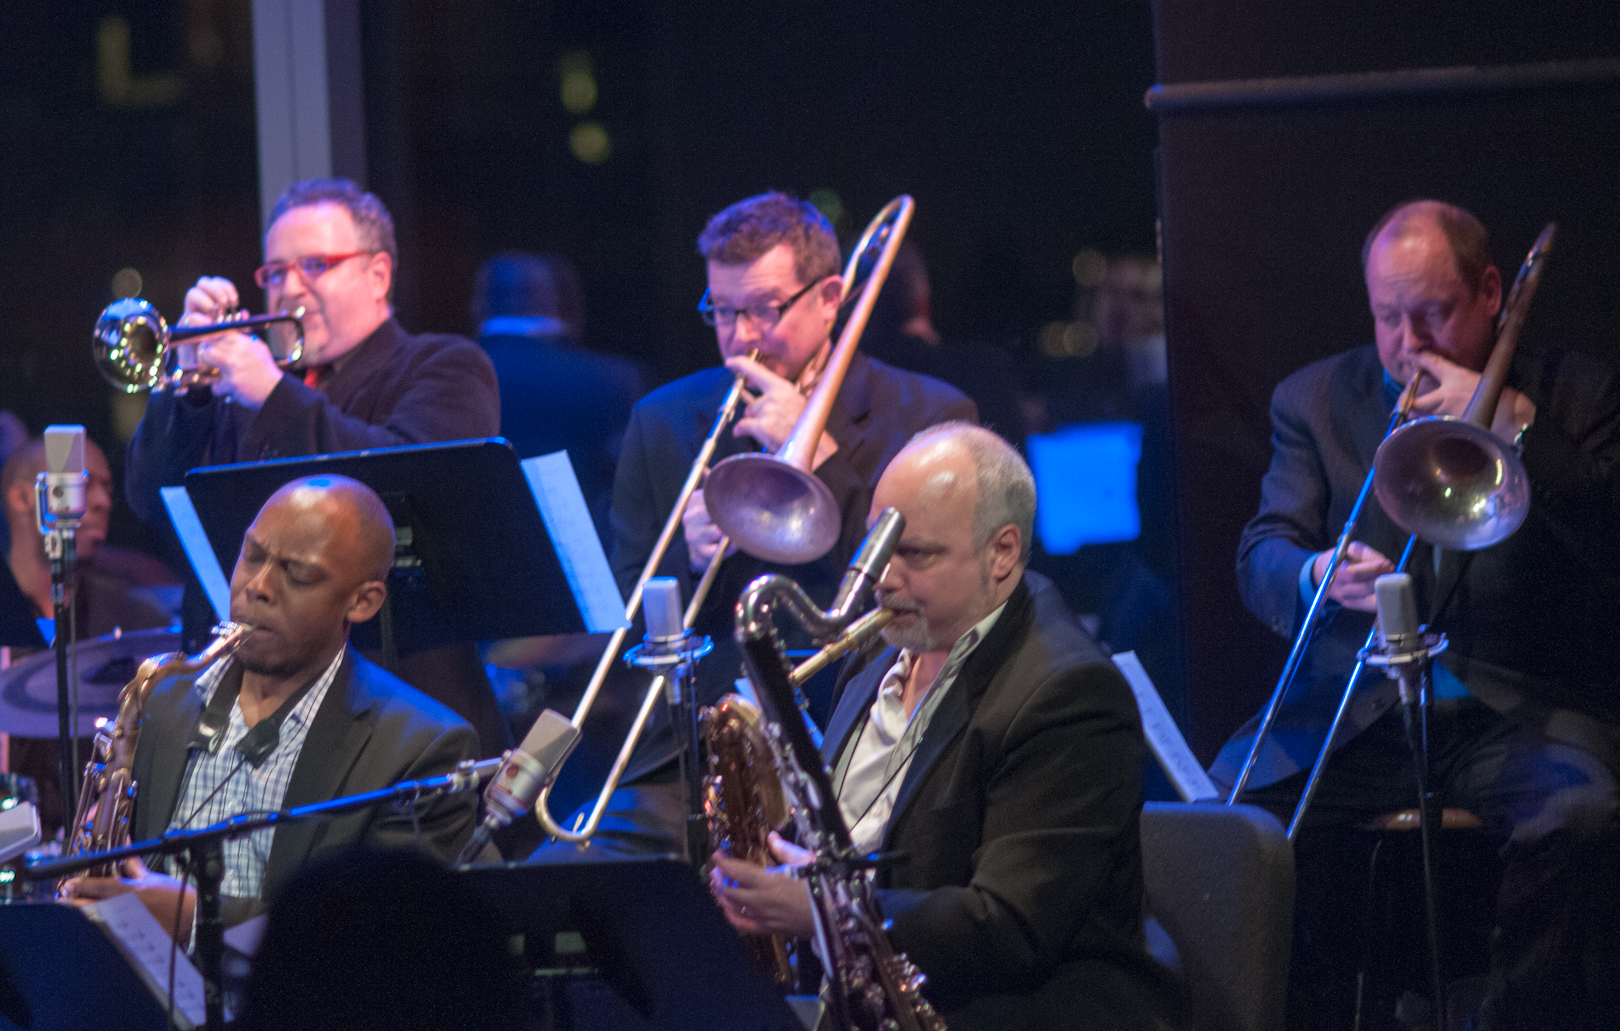 Endangered Species: The Music of Wayne Shorter at Dizzy's Club Coca Cola